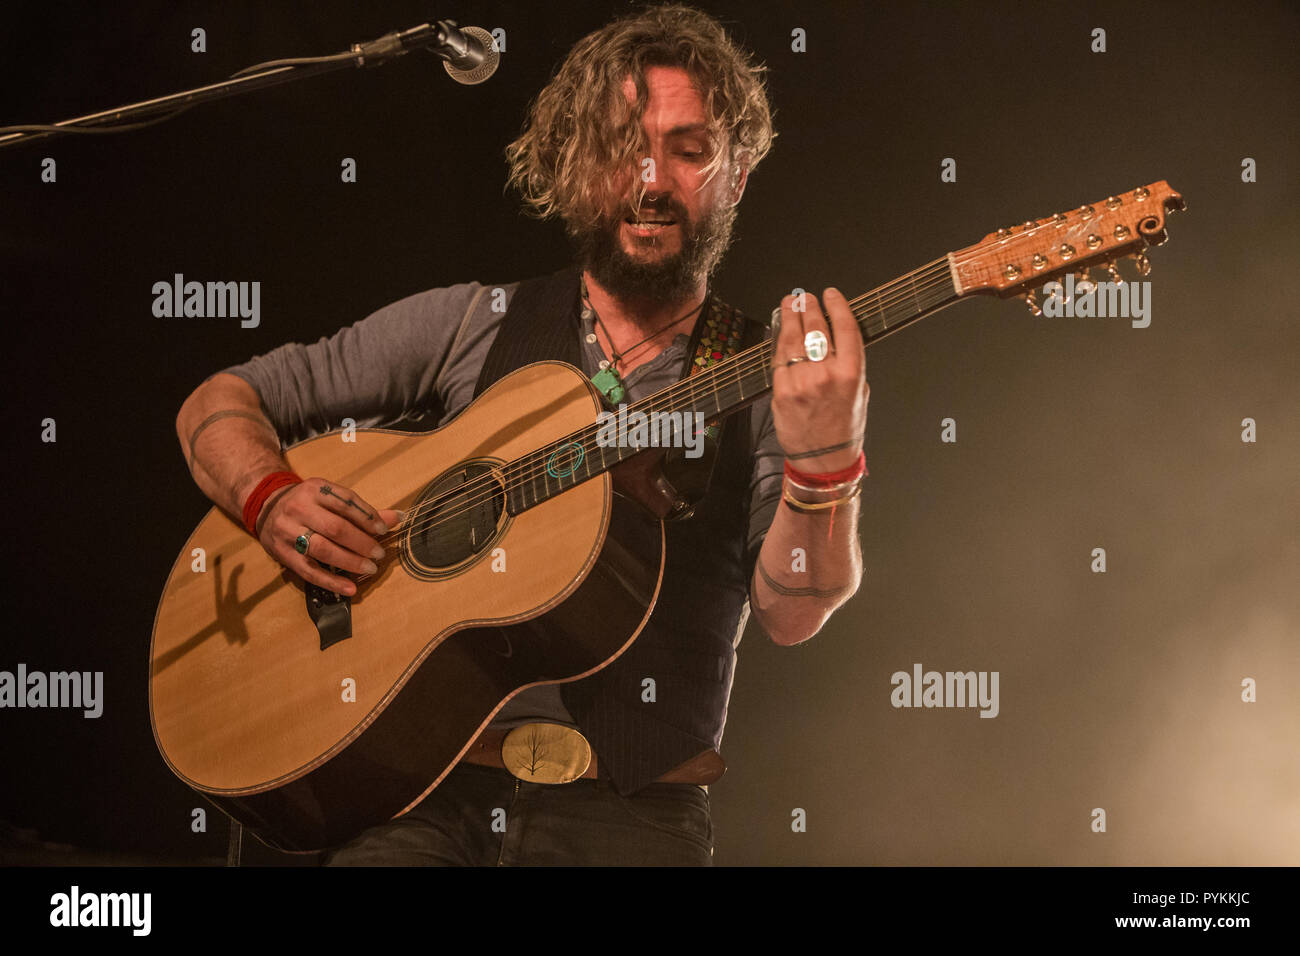 "Milan Italy. 28 October 2018. The Australian band JOHN BUTLER TRIO performs live on stage at Alcatraz durinh the ""European Tour 2018/19"" Credit: Rodolfo Sassano/Alamy Live News Stock Photo"